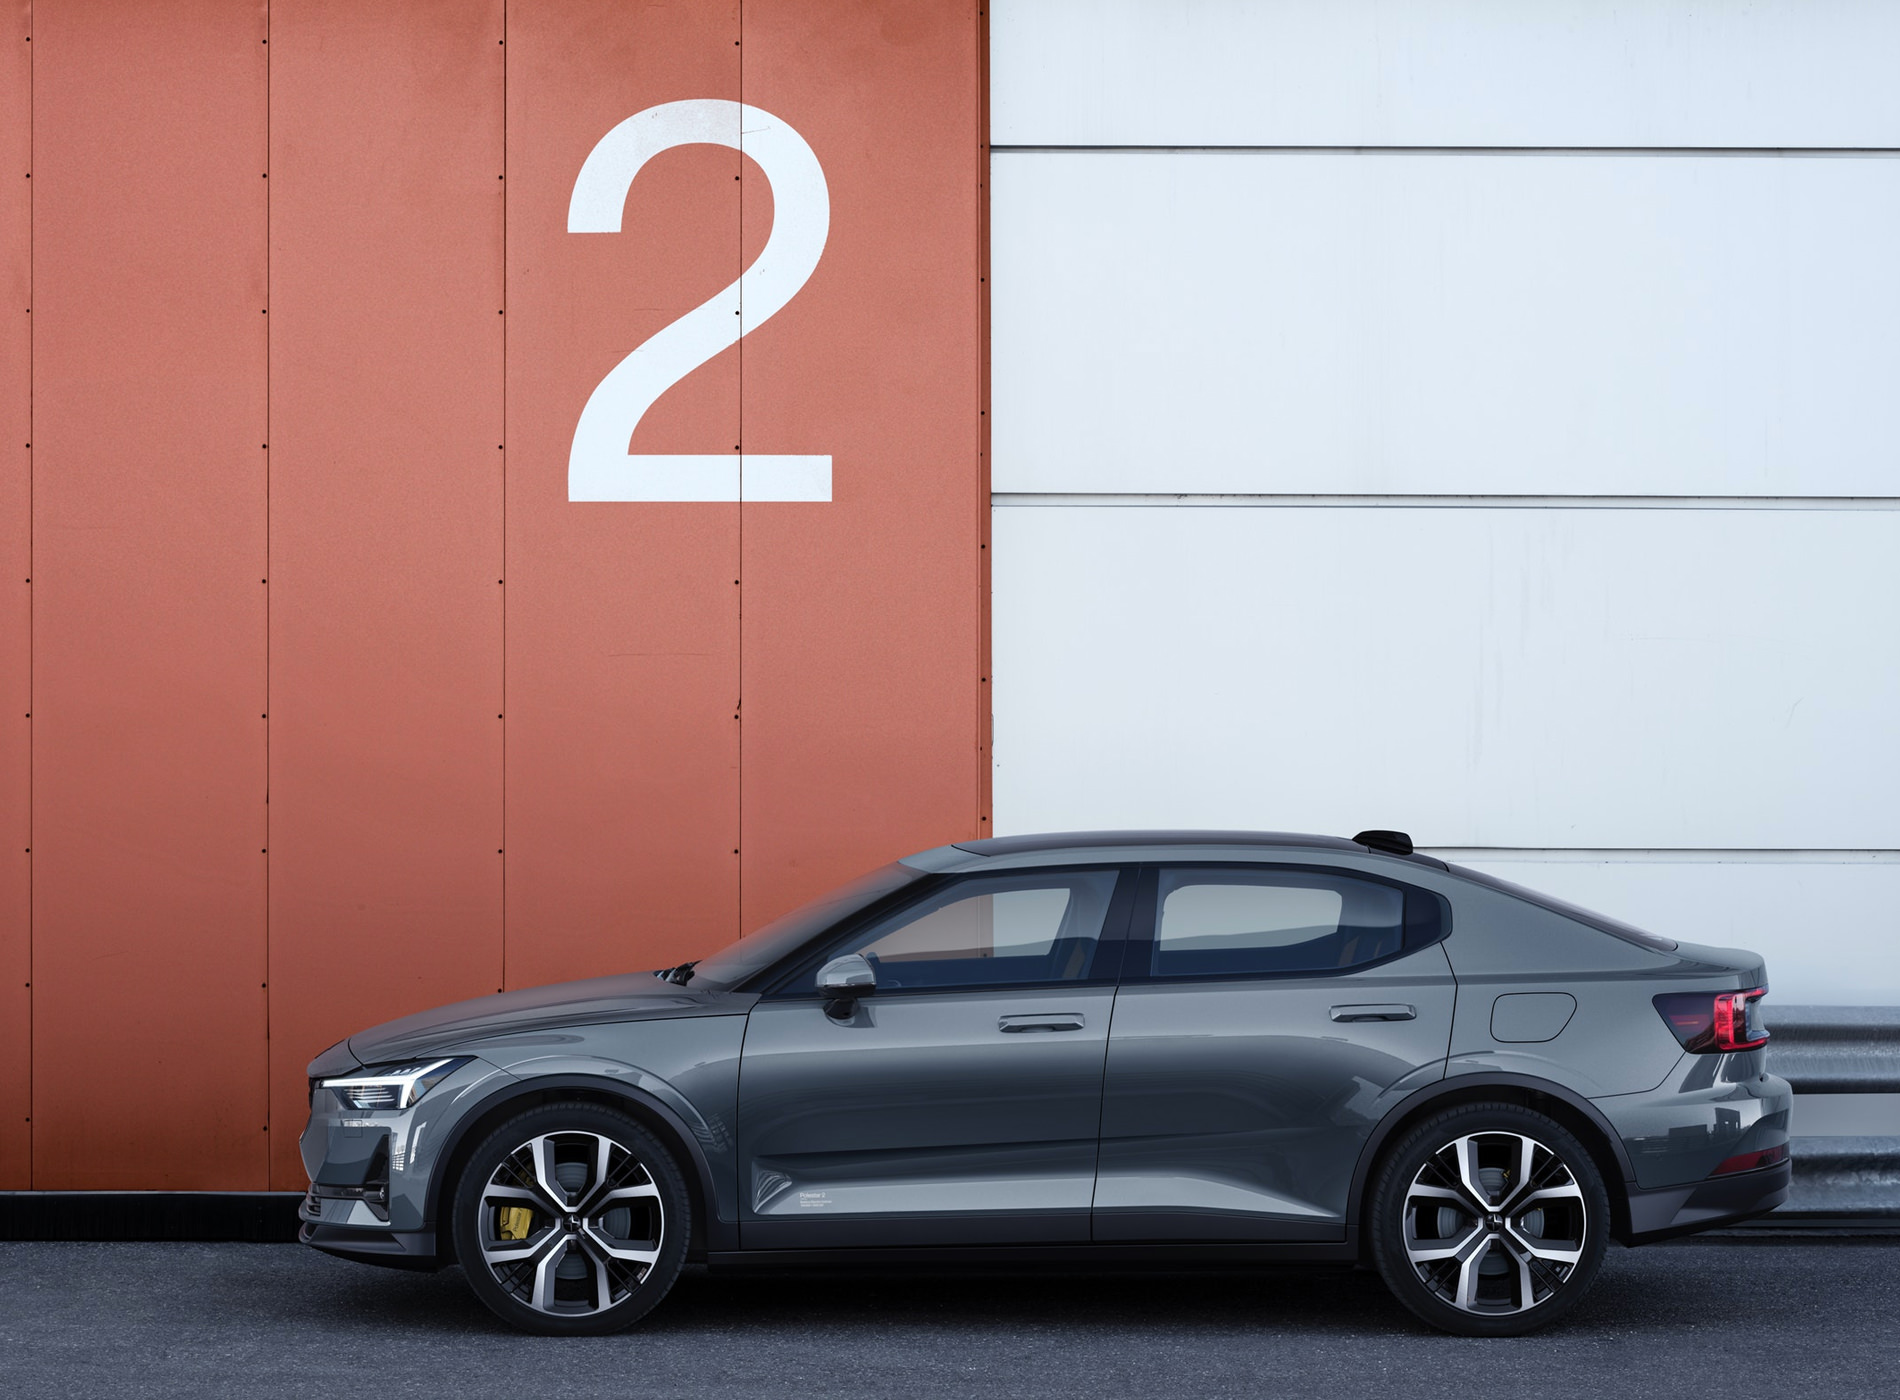 The Polestar 2 Electric Car Berlin Package Gray